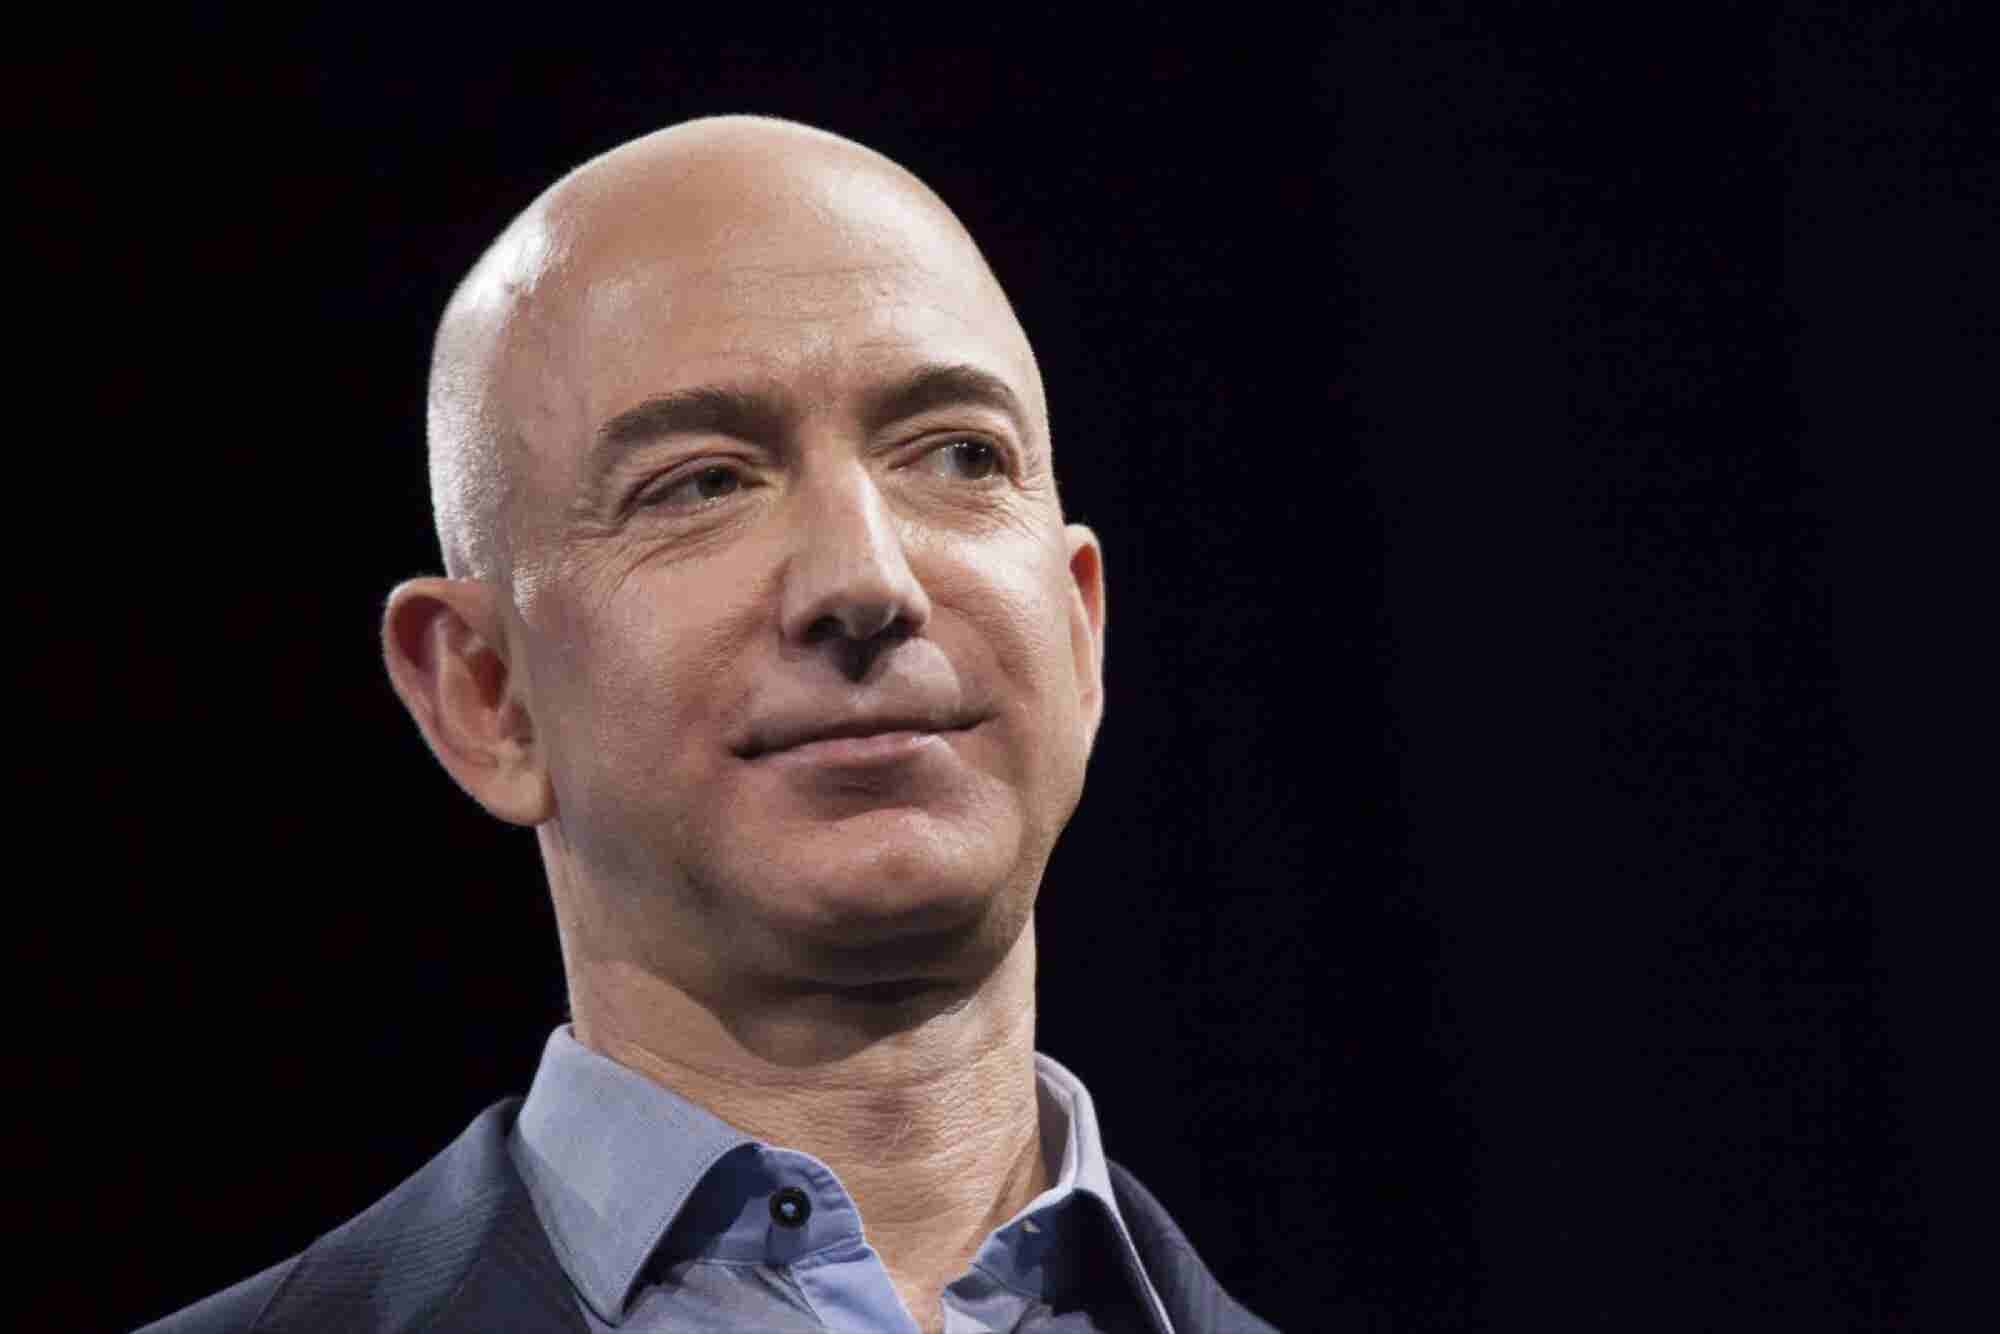 Jeff Bezos Reveals His Daily Decision-Making Goal and 30 Other Crazy Things We've Learned About the Amazon Founder